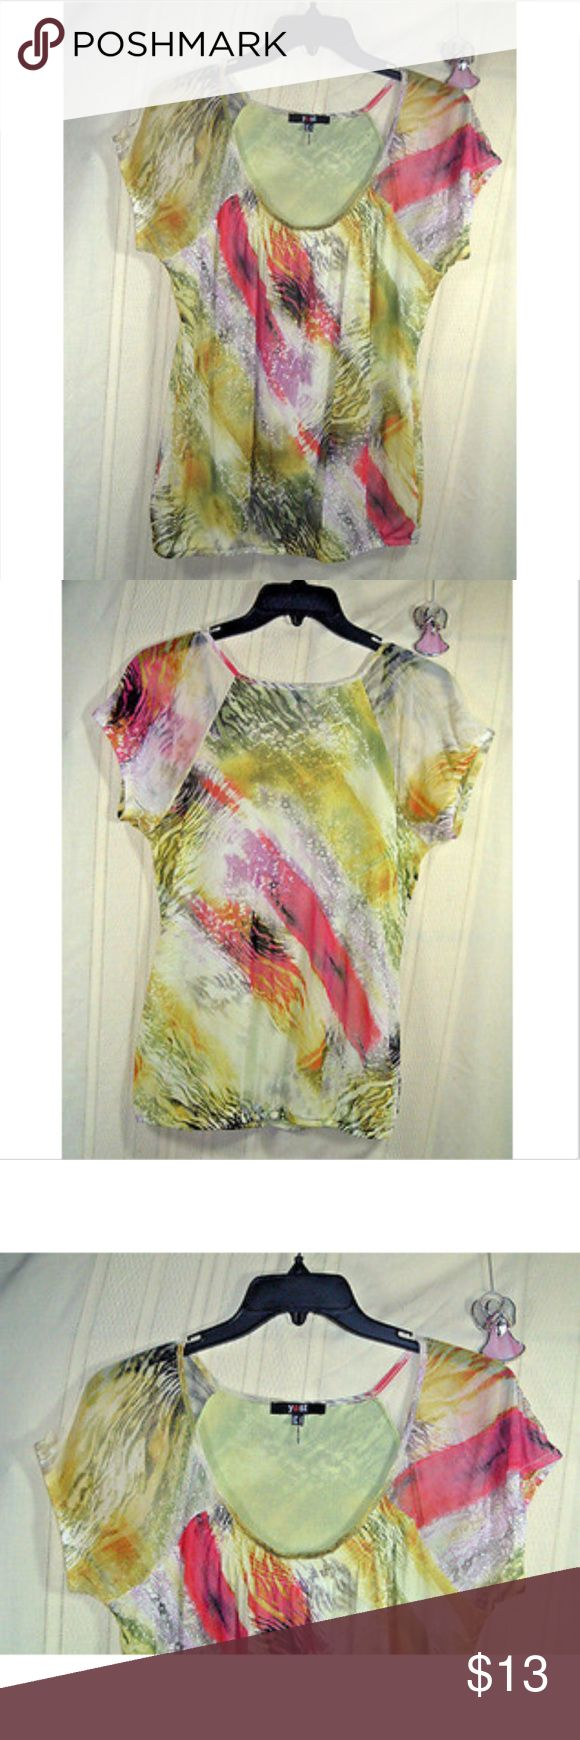 """Yest Womens Blouse Sz S Multi-Colored Brand:  Yest  Condition:  Pre-owend.  Material tag removed.  Details:  Womens blouse, multi-colored with shades of green, red, purple, yellow and  black watercolor, short sleeve, lined except for the sleeves  Womens size S  All measurements are measured with the article laying flat, the chest measurements are doubled and rounded to the nearest inch.  Length:  25 1/2"""" Chest:  37""""  Material:  Unknown Tags removed Yest Tops Blouses"""